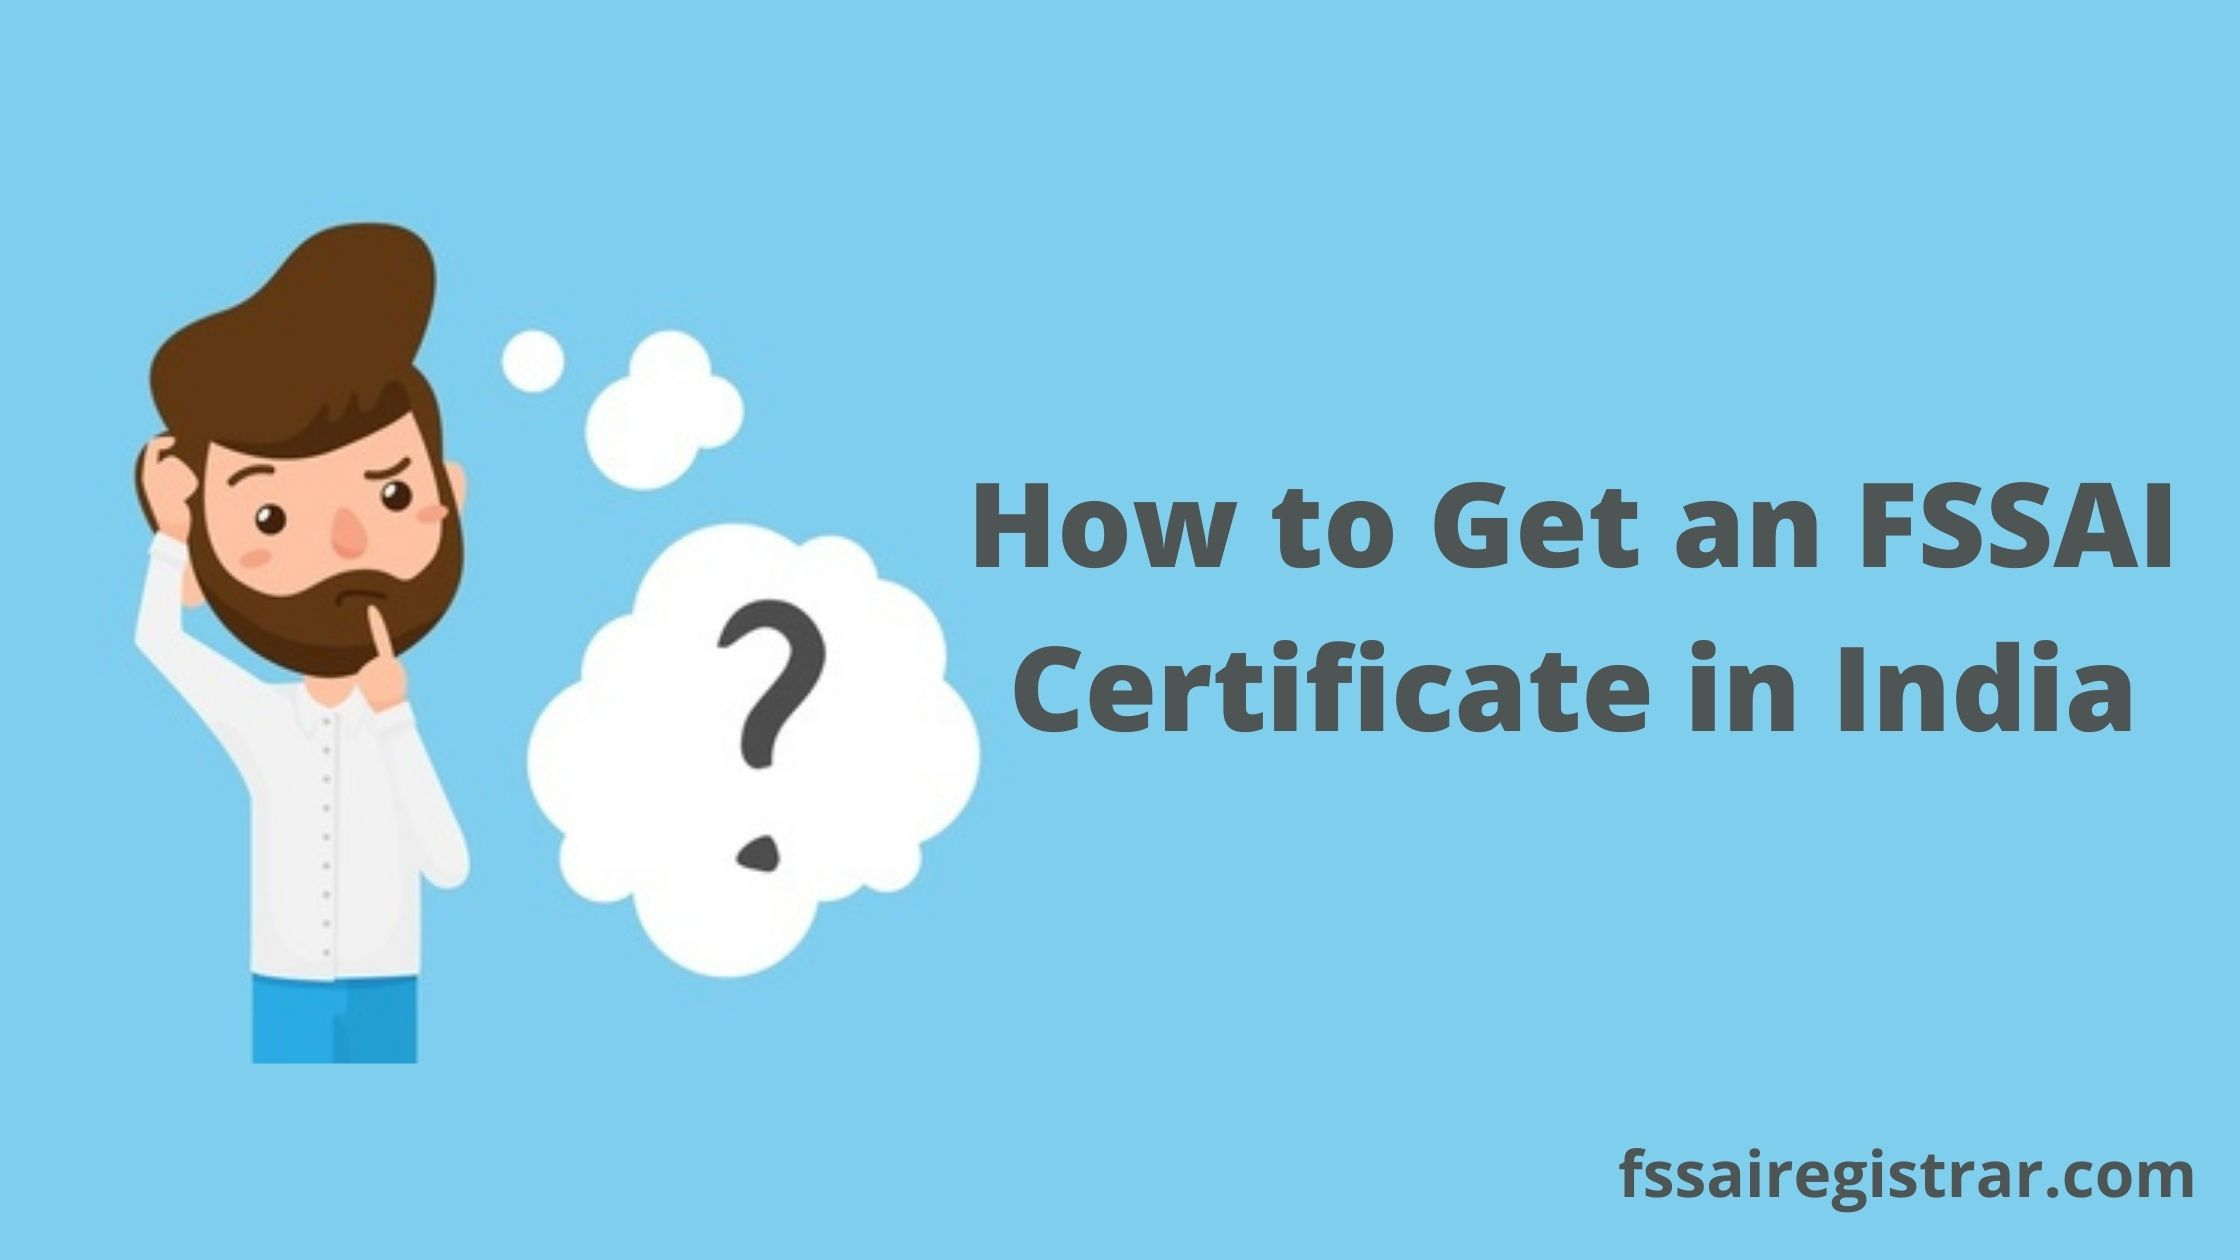 How to Get an FSSAI Certificate in India - Food License